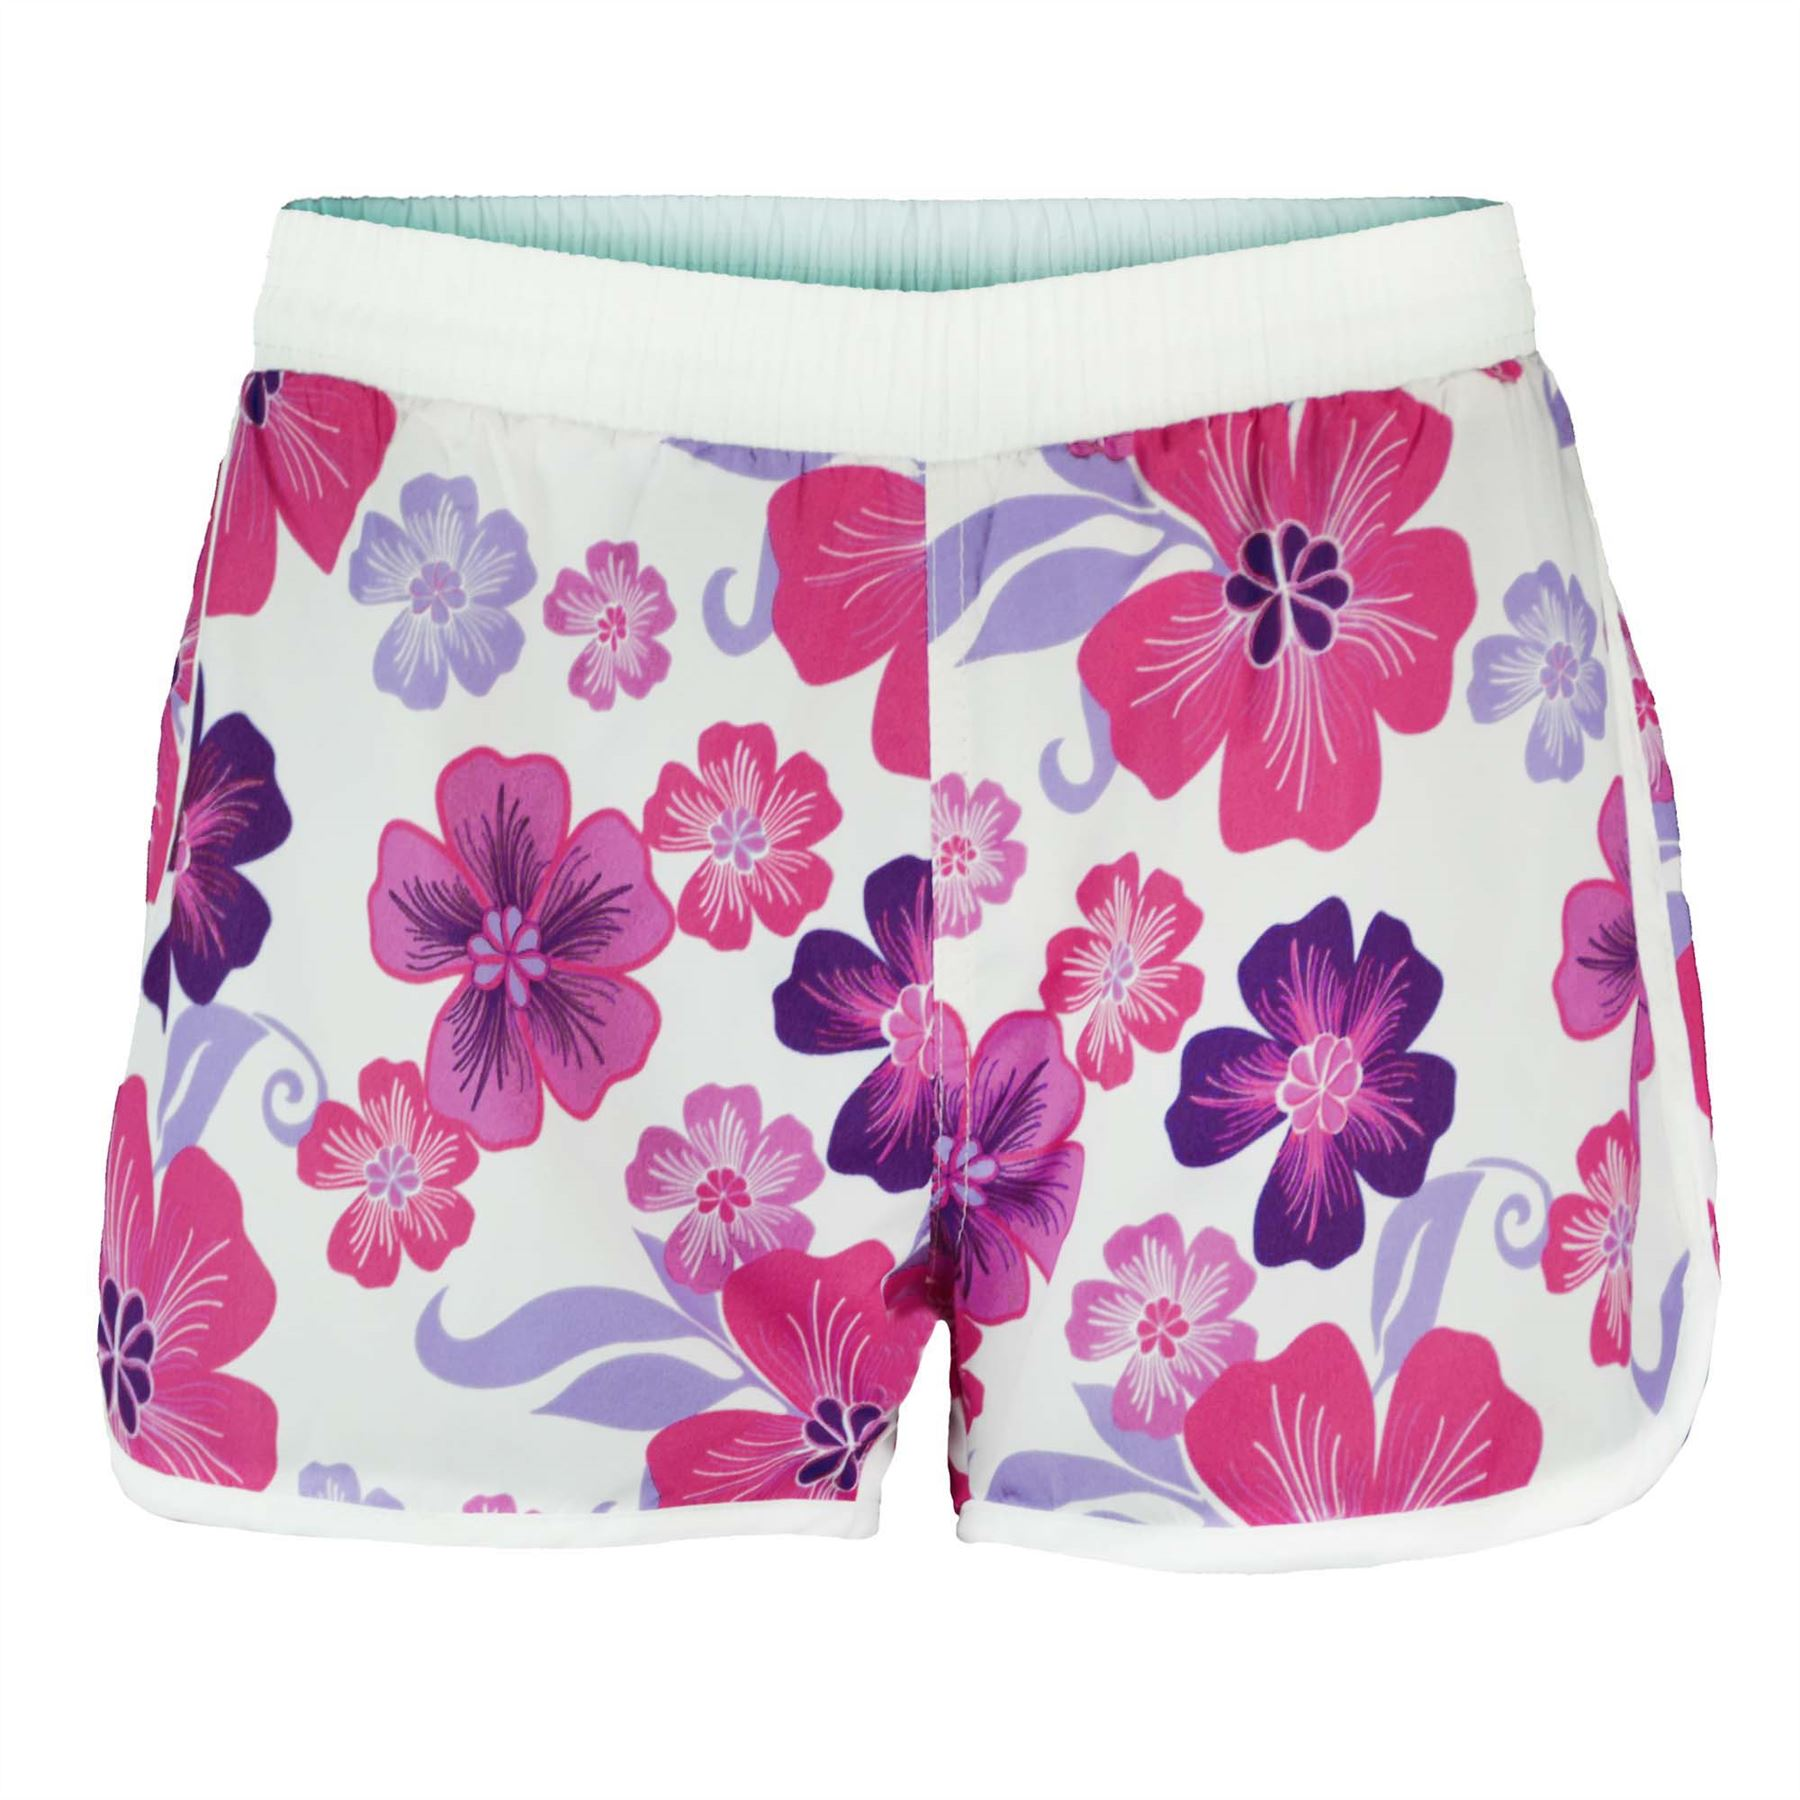 womens summer swimming shorts ladies floral beach surf. Black Bedroom Furniture Sets. Home Design Ideas